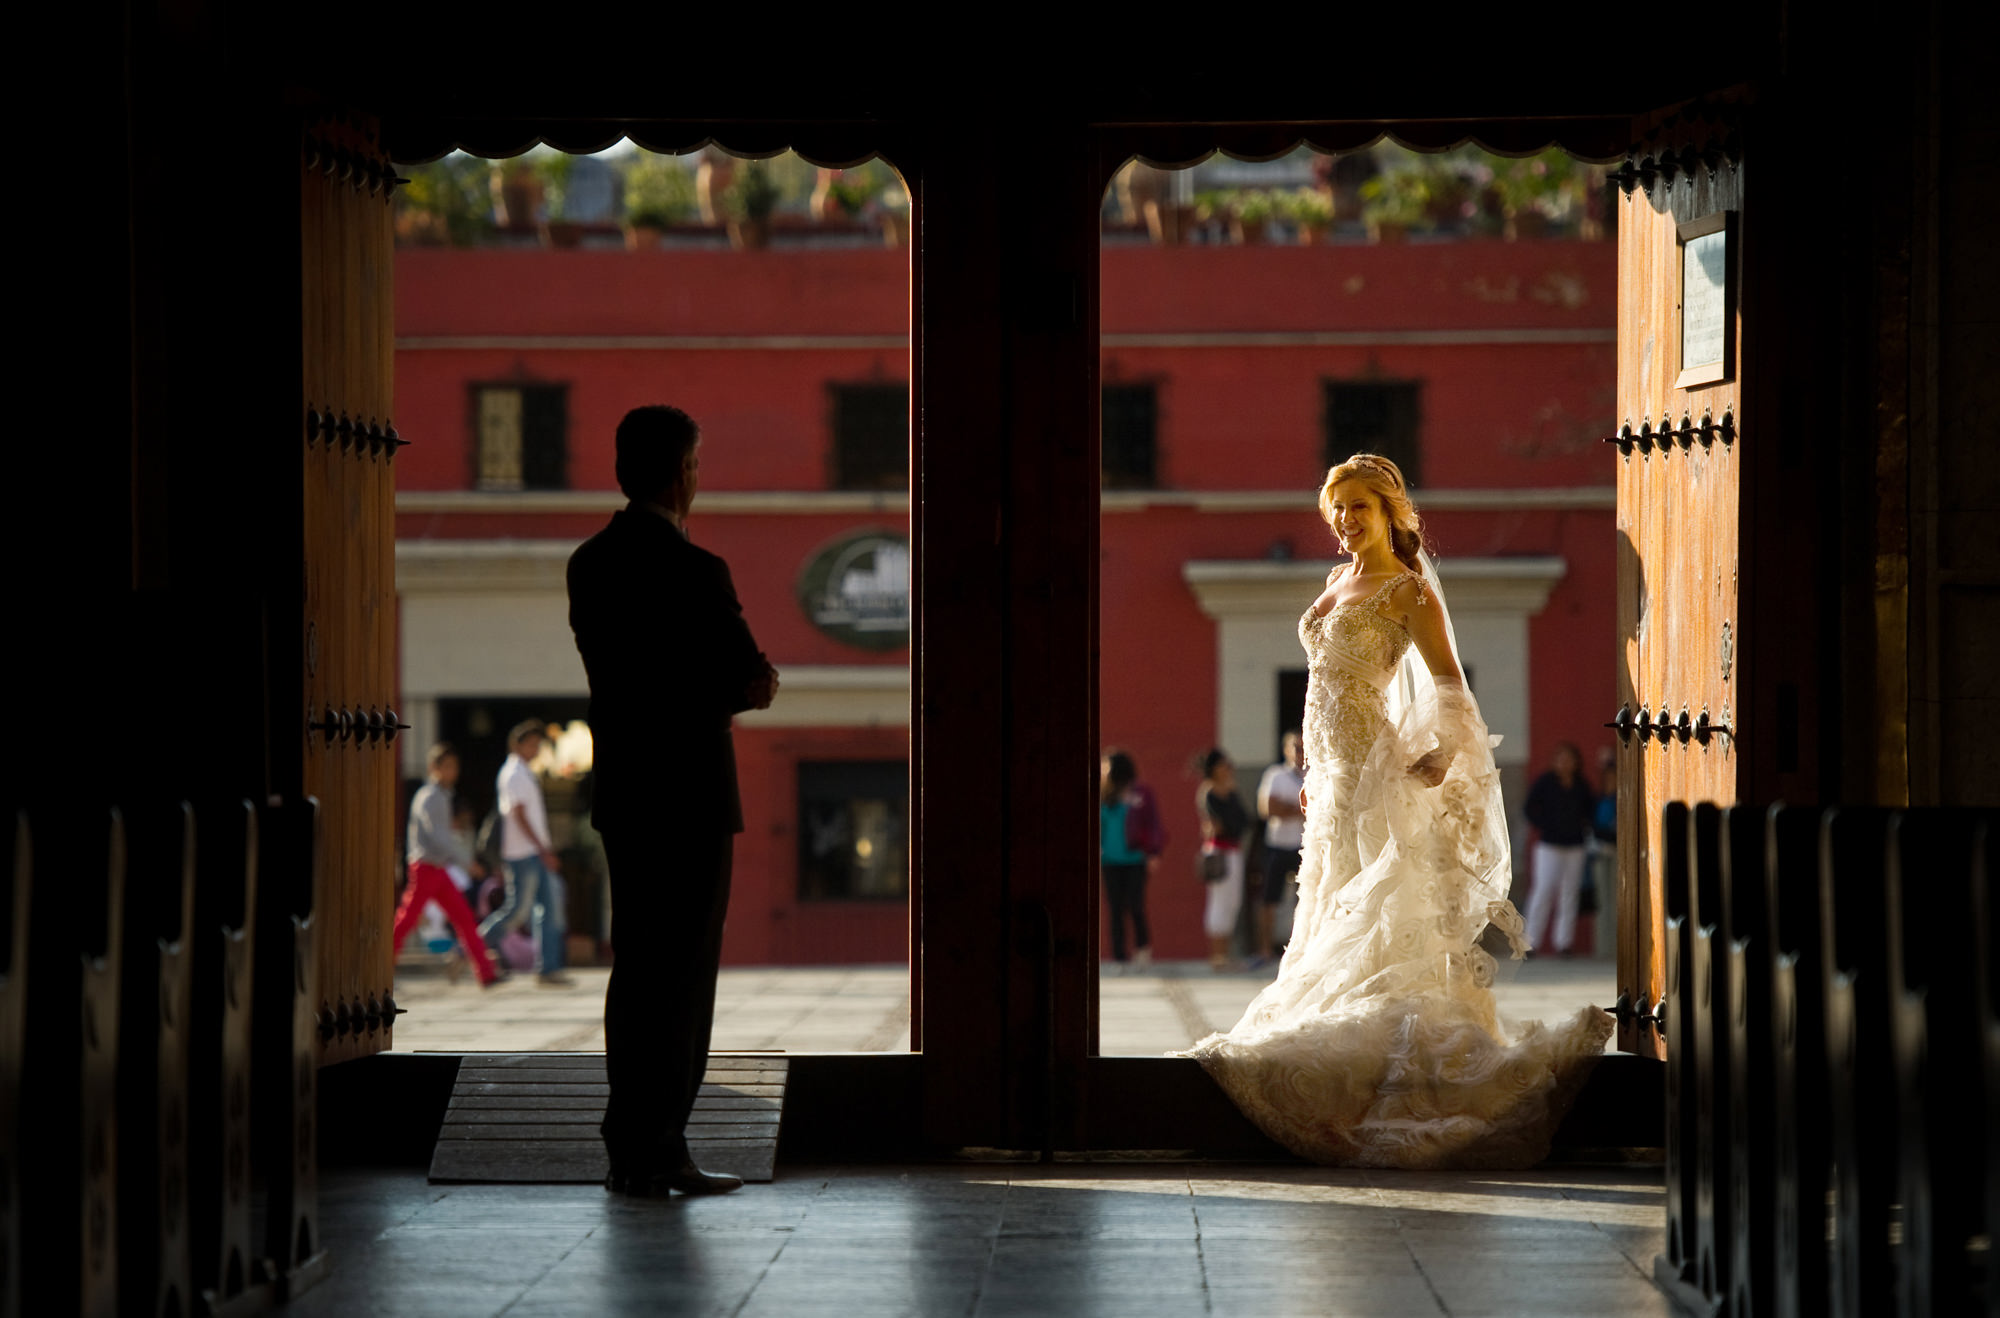 First look of bride and groom framed by double doorways, by Cliff Mautner